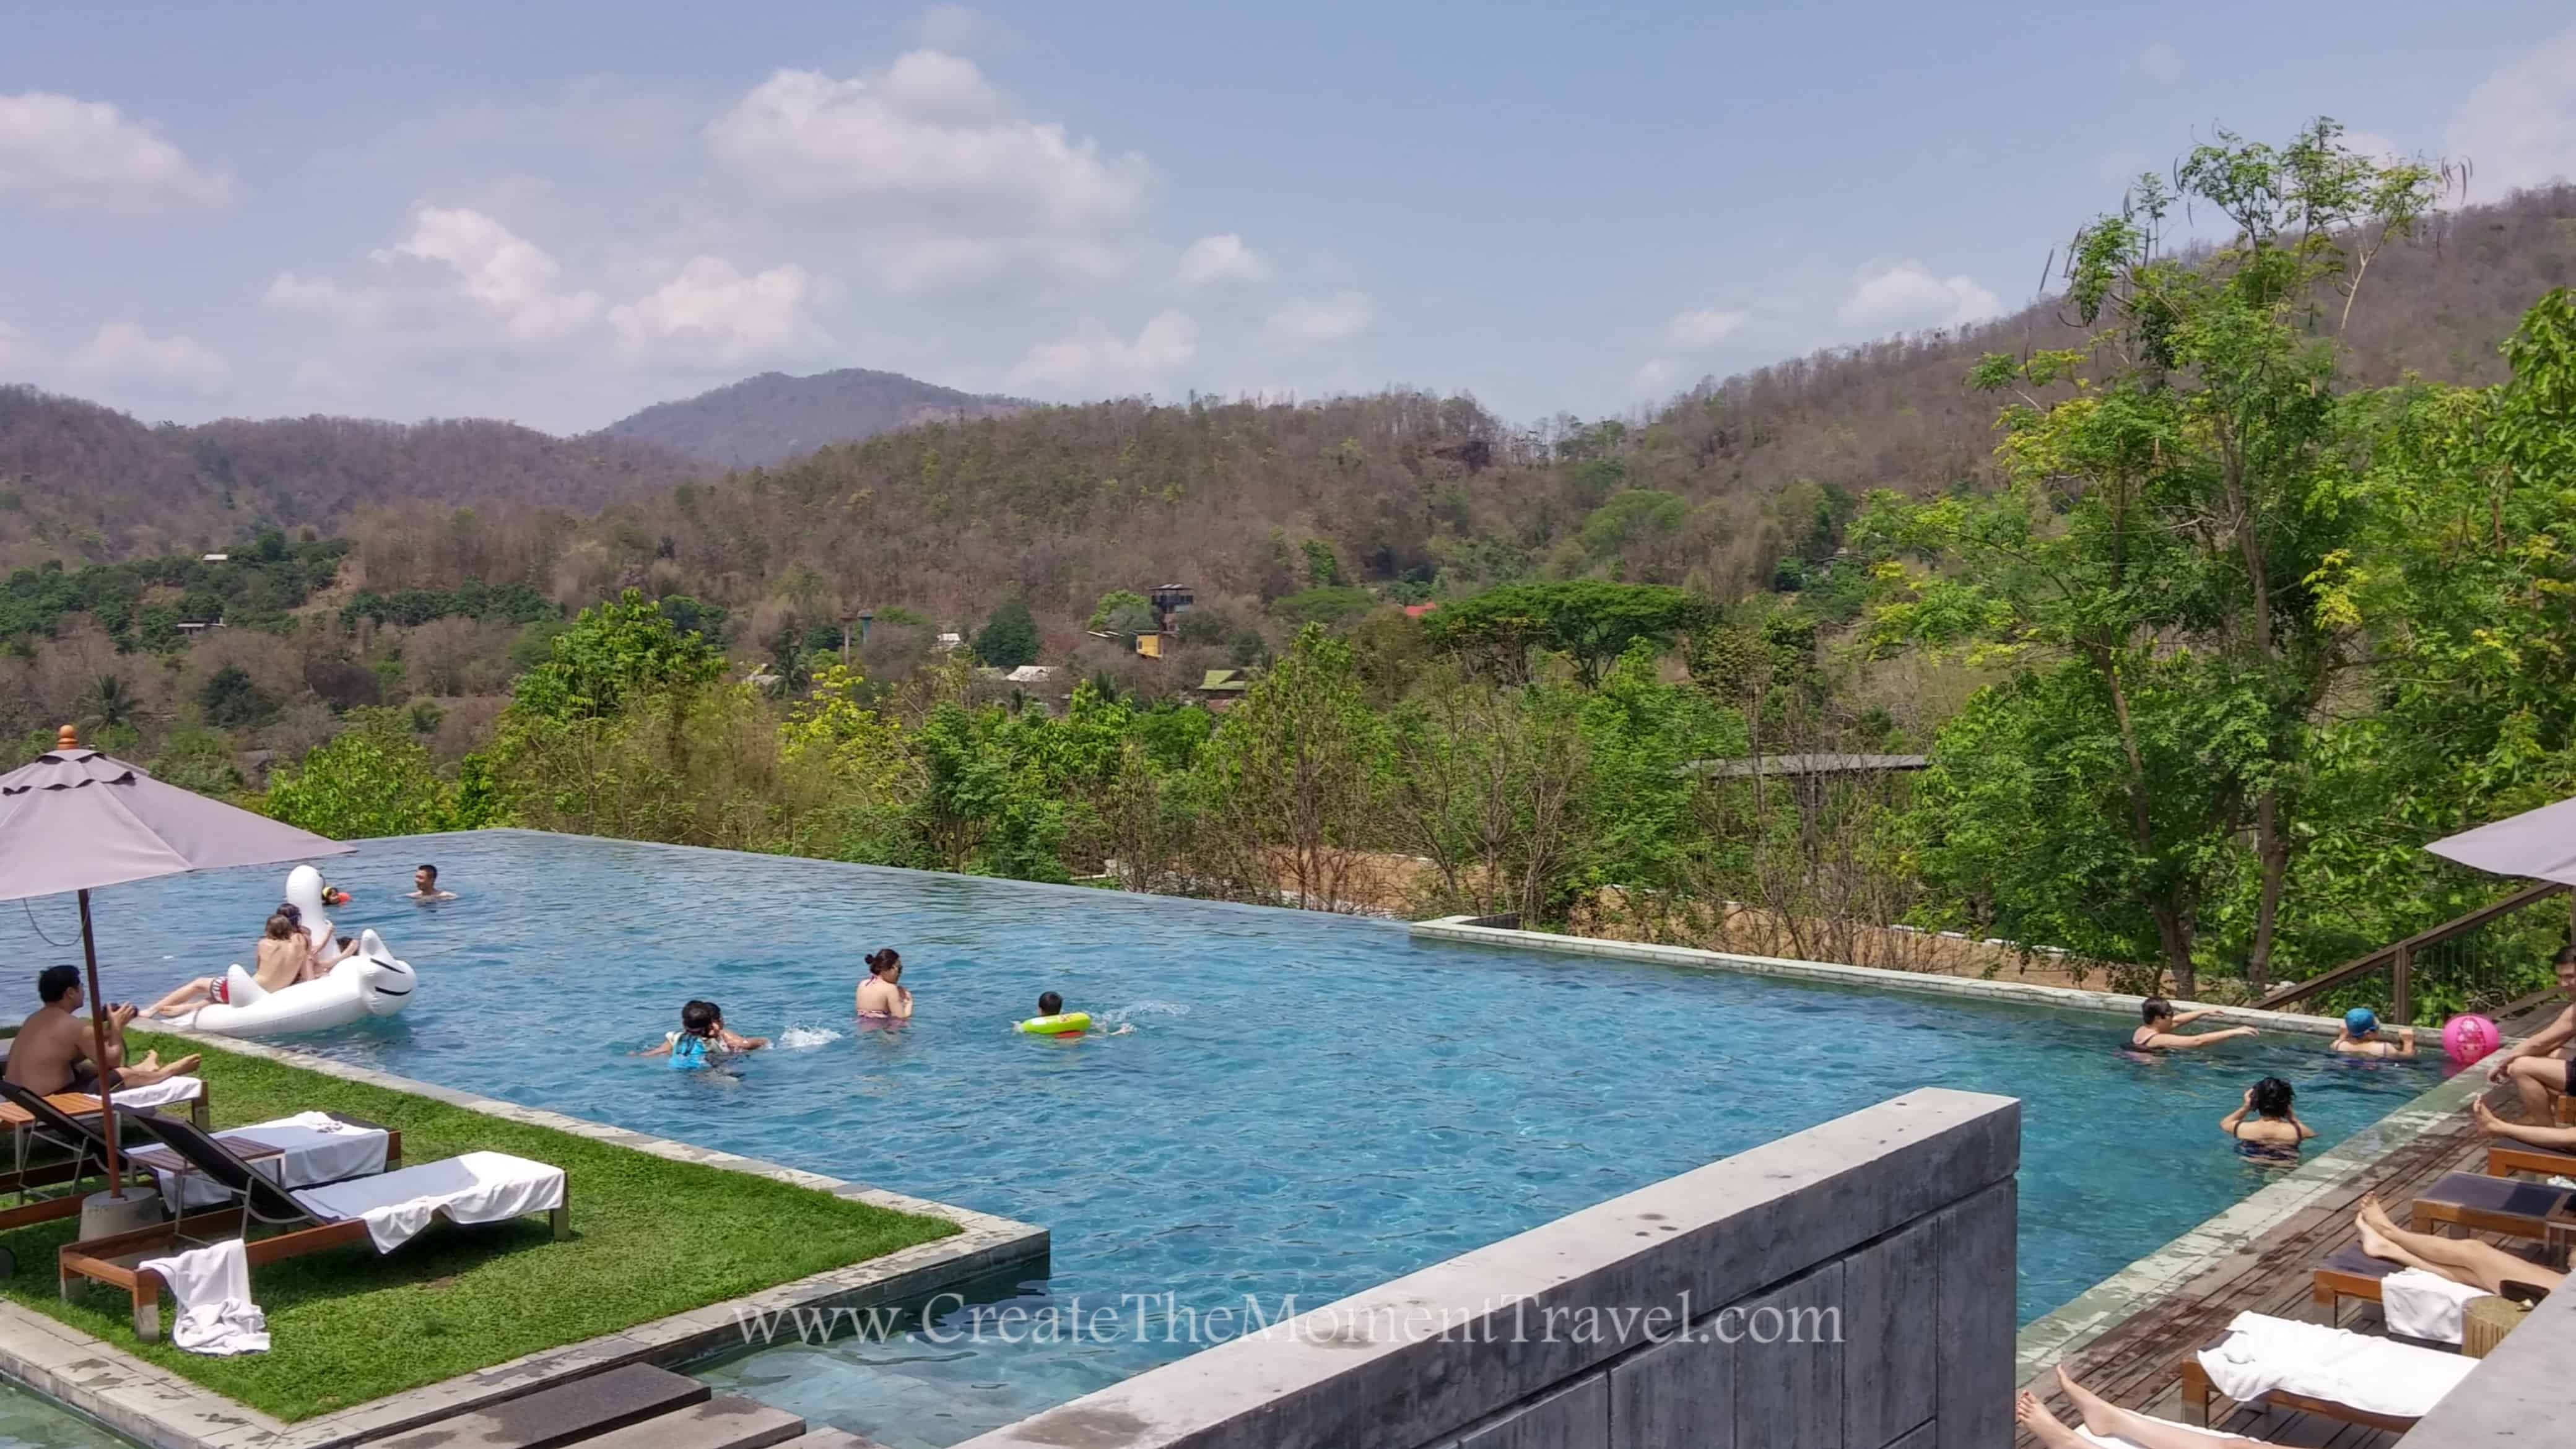 Infinity Pool at Resort in Northern Thailand by Create The Moment Travel